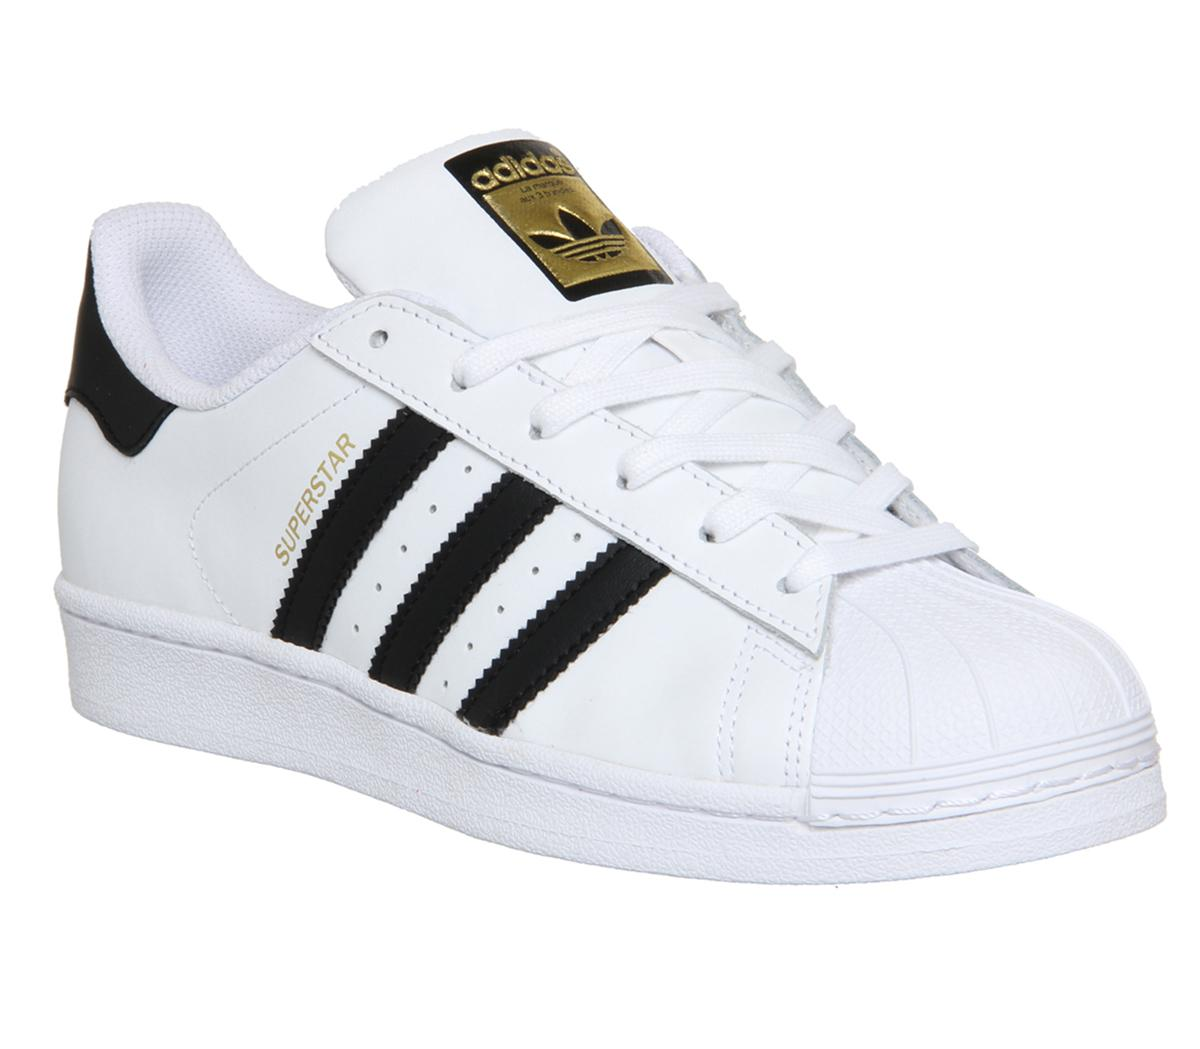 adidas Superstar Trainers White Black Foundation junior